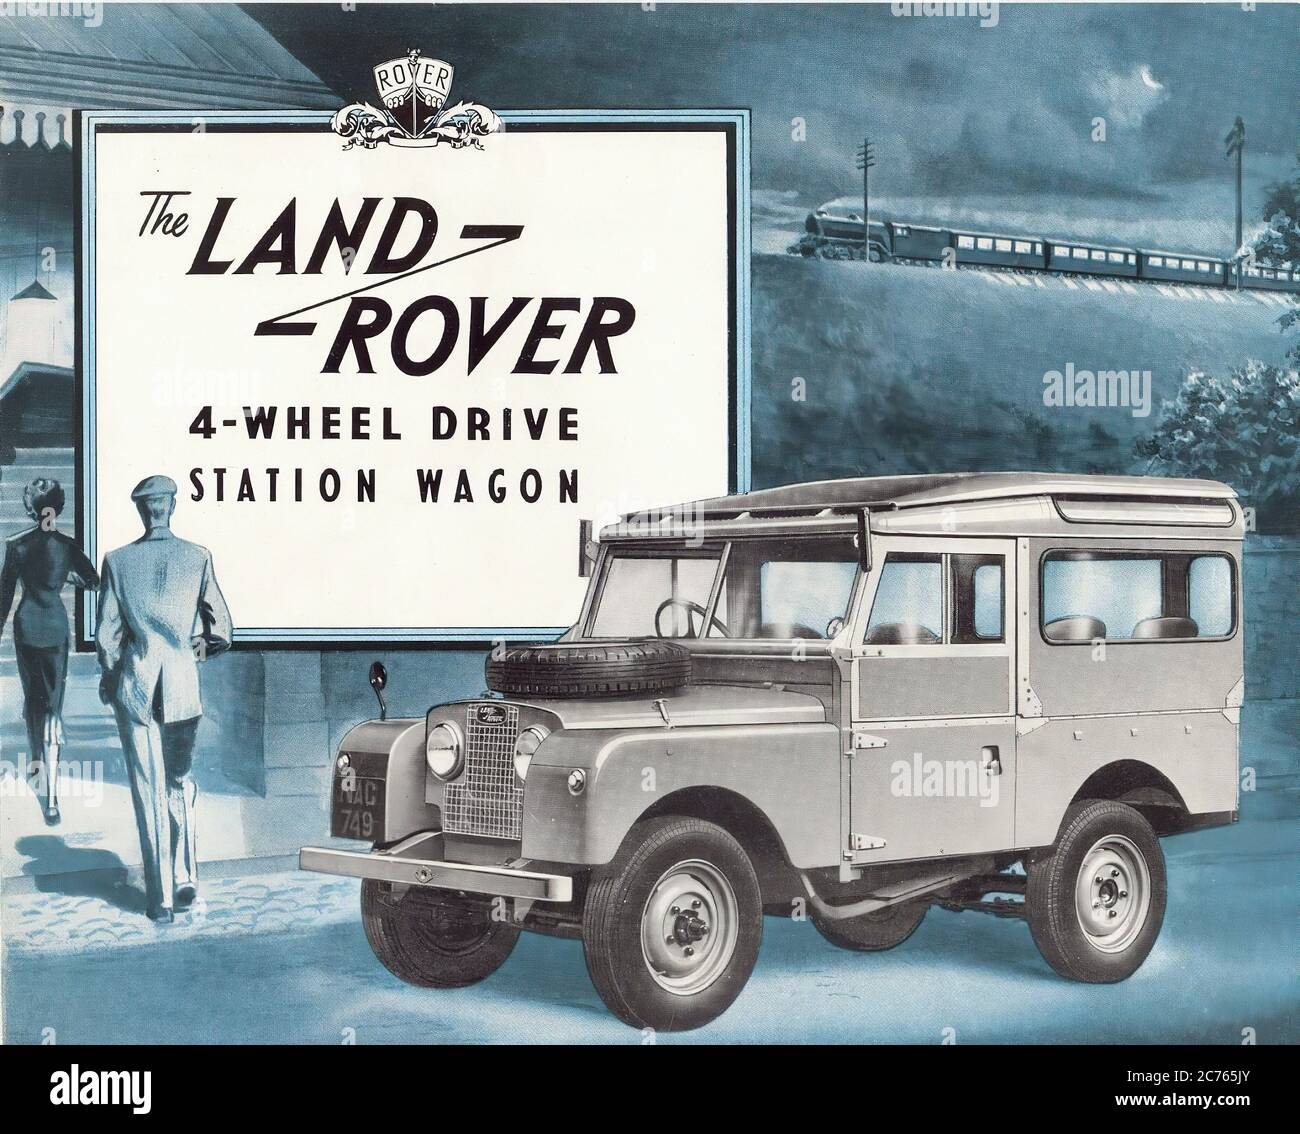 Land Rover Serie 1 Station Wagon From 1949 Vintage Car Advertising Stock Photo Alamy